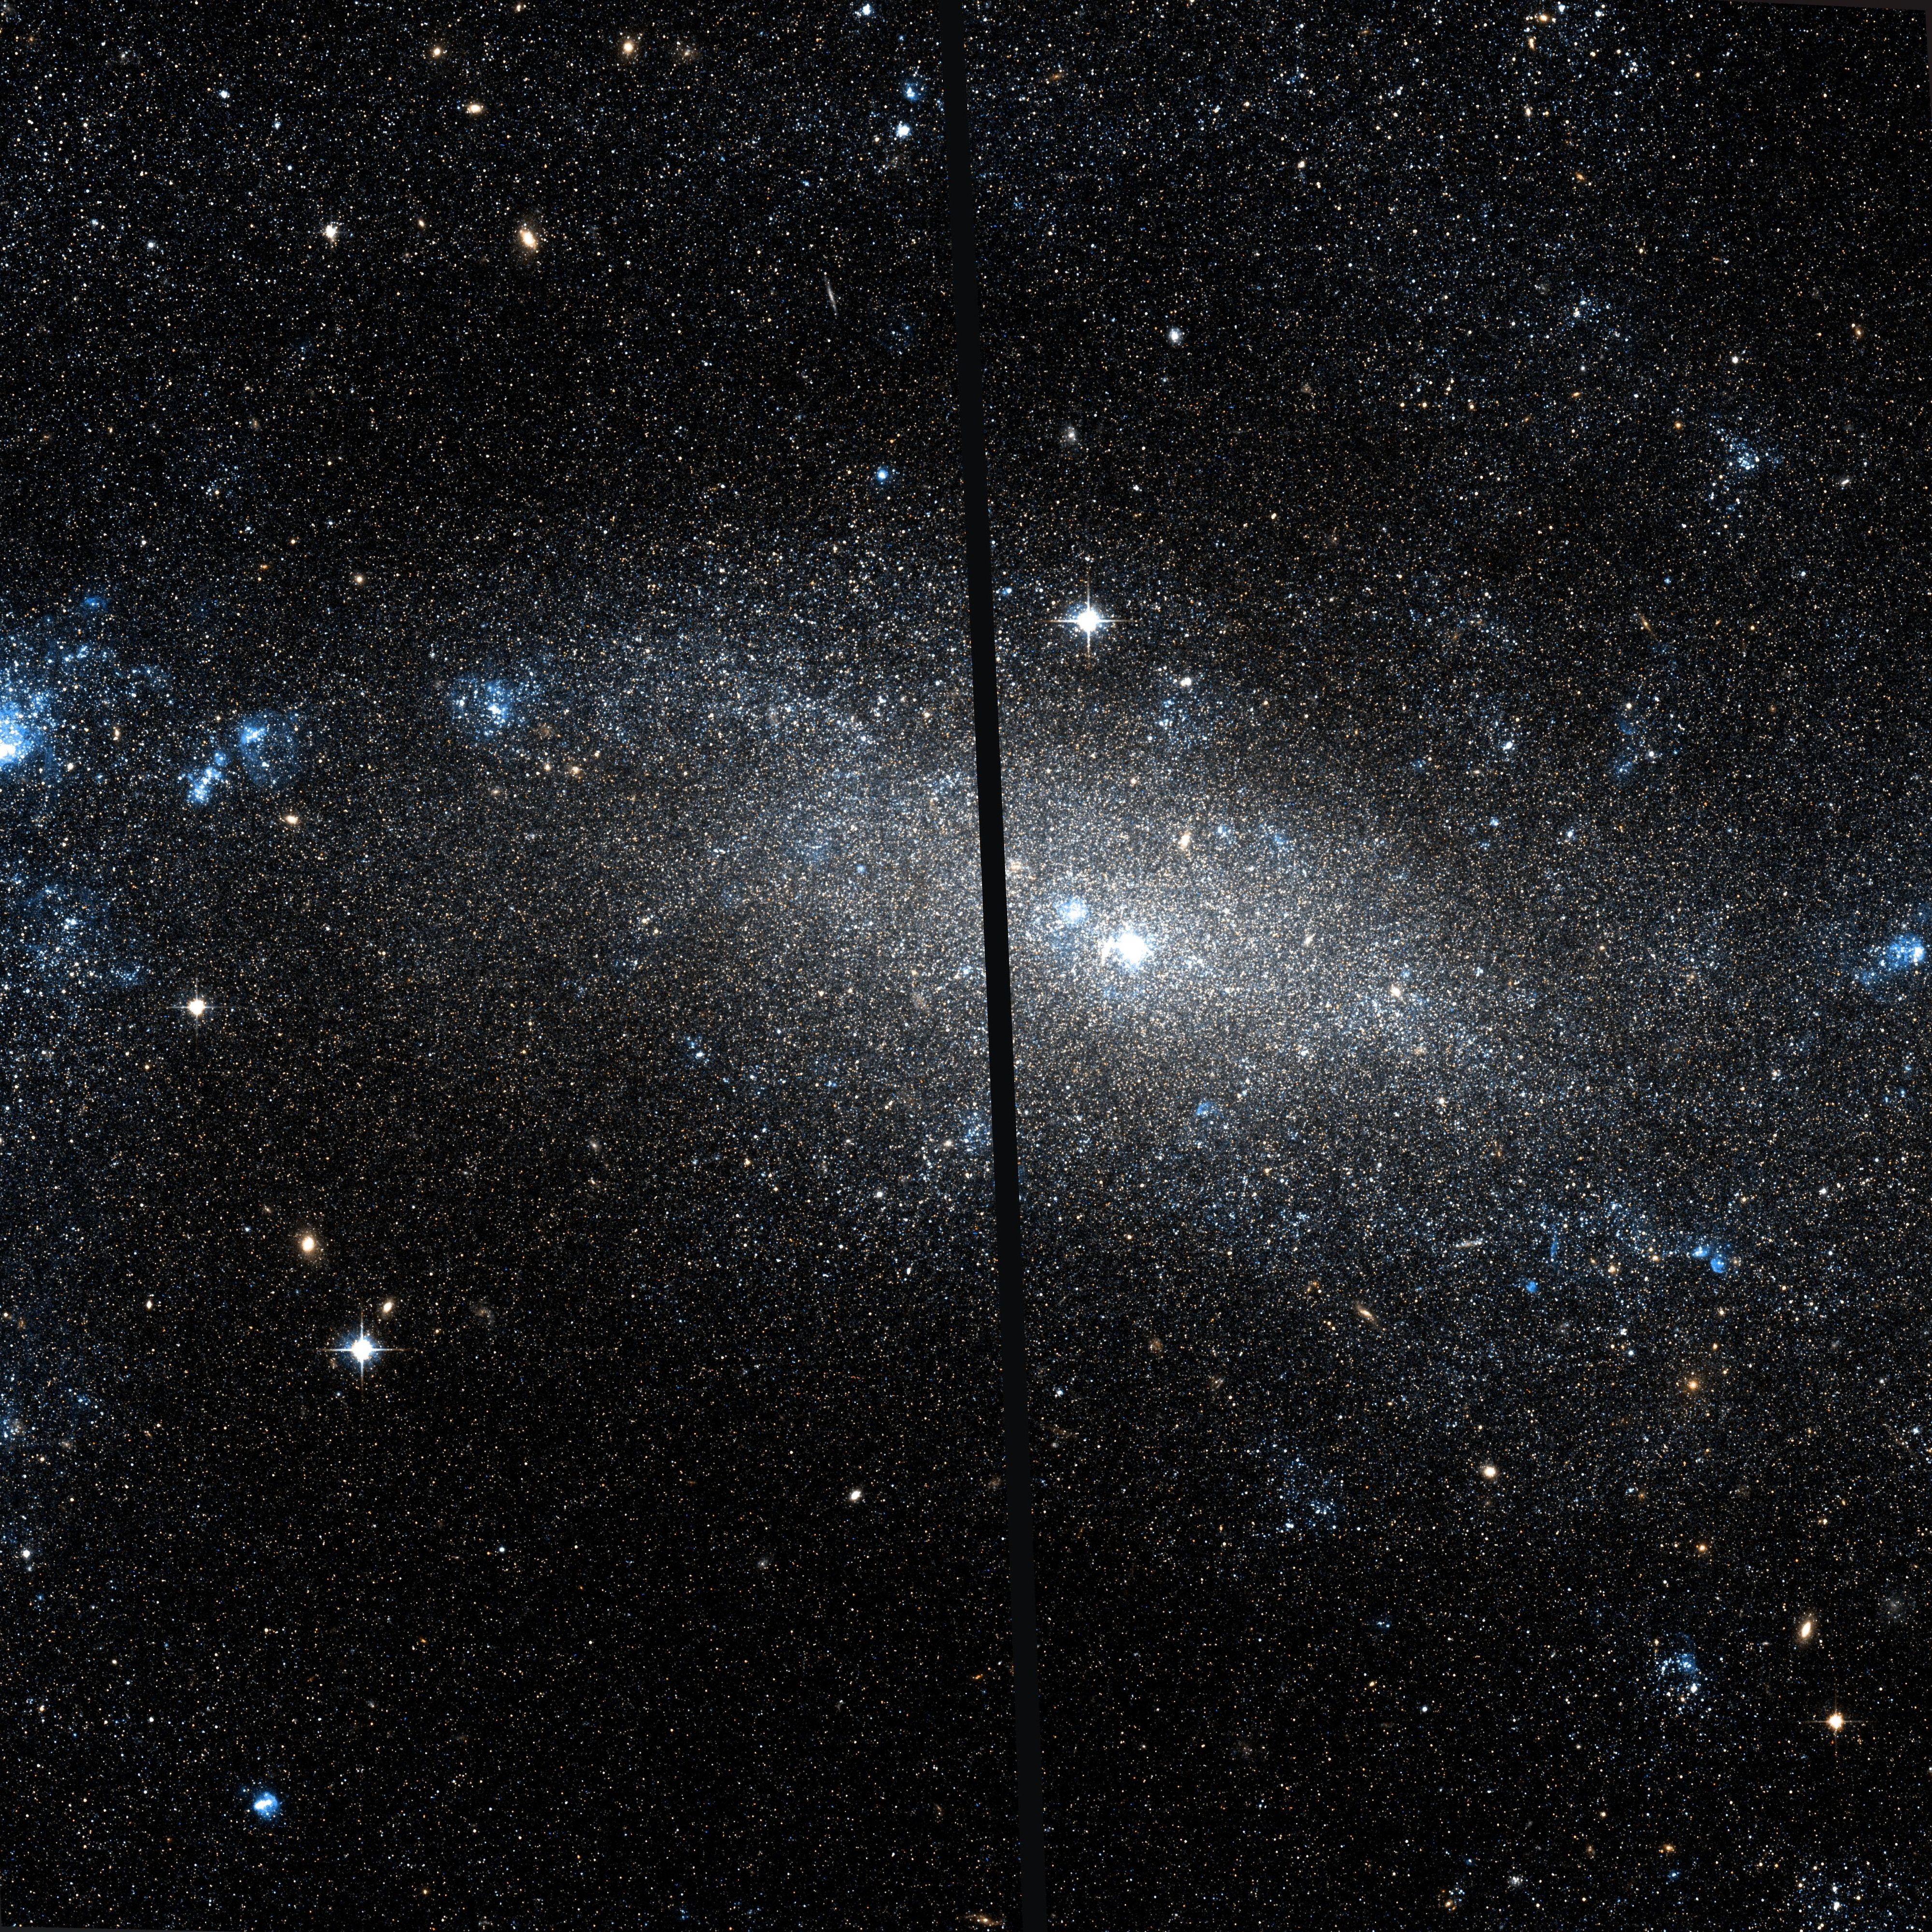 Depiction of NGC 4395